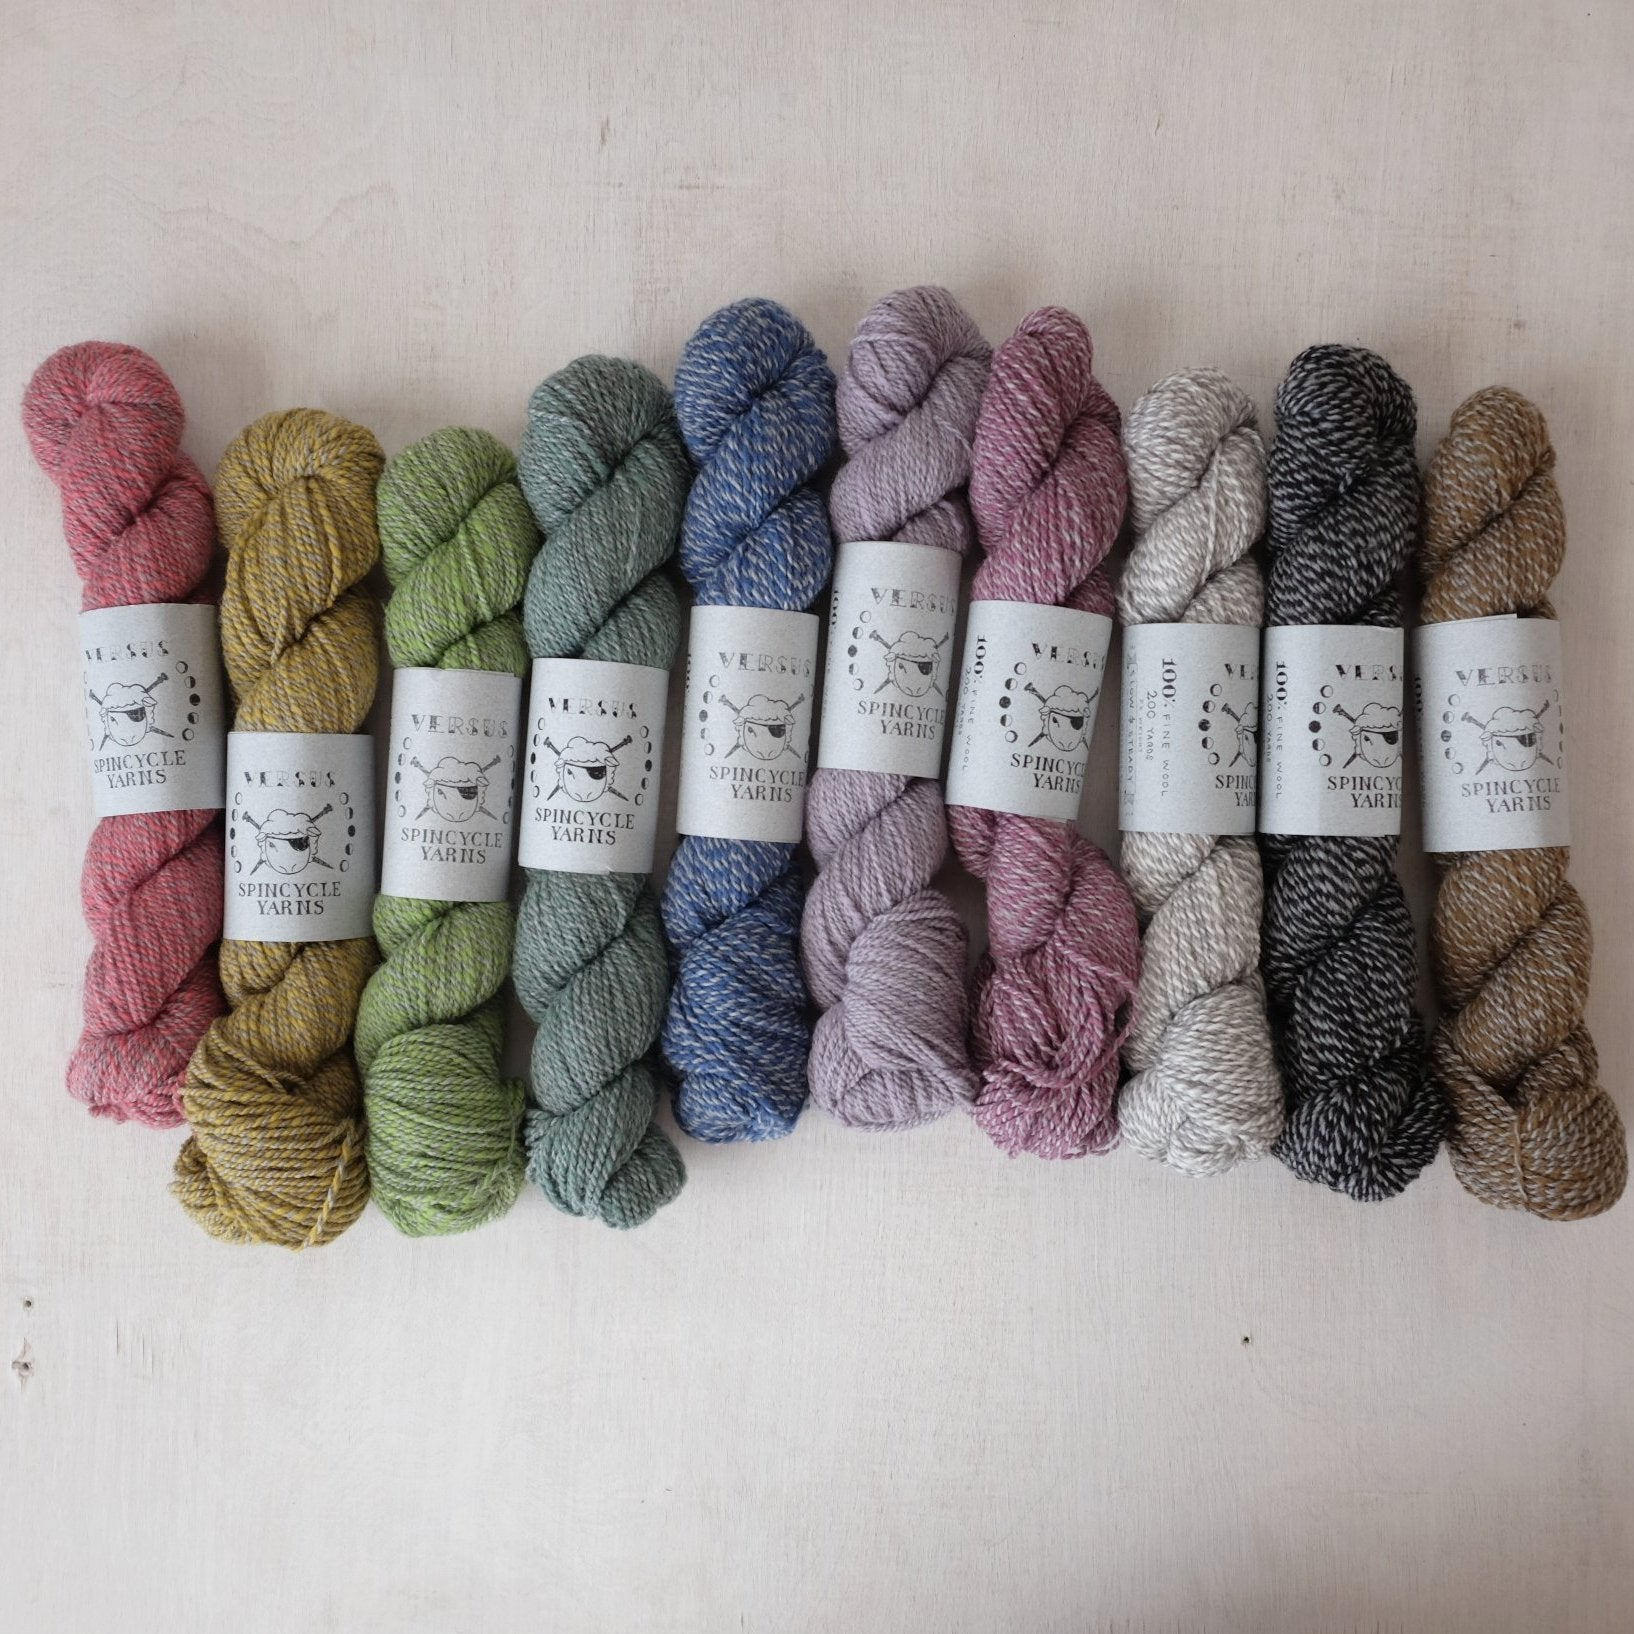 Spincycle Yarns - Versus - New!